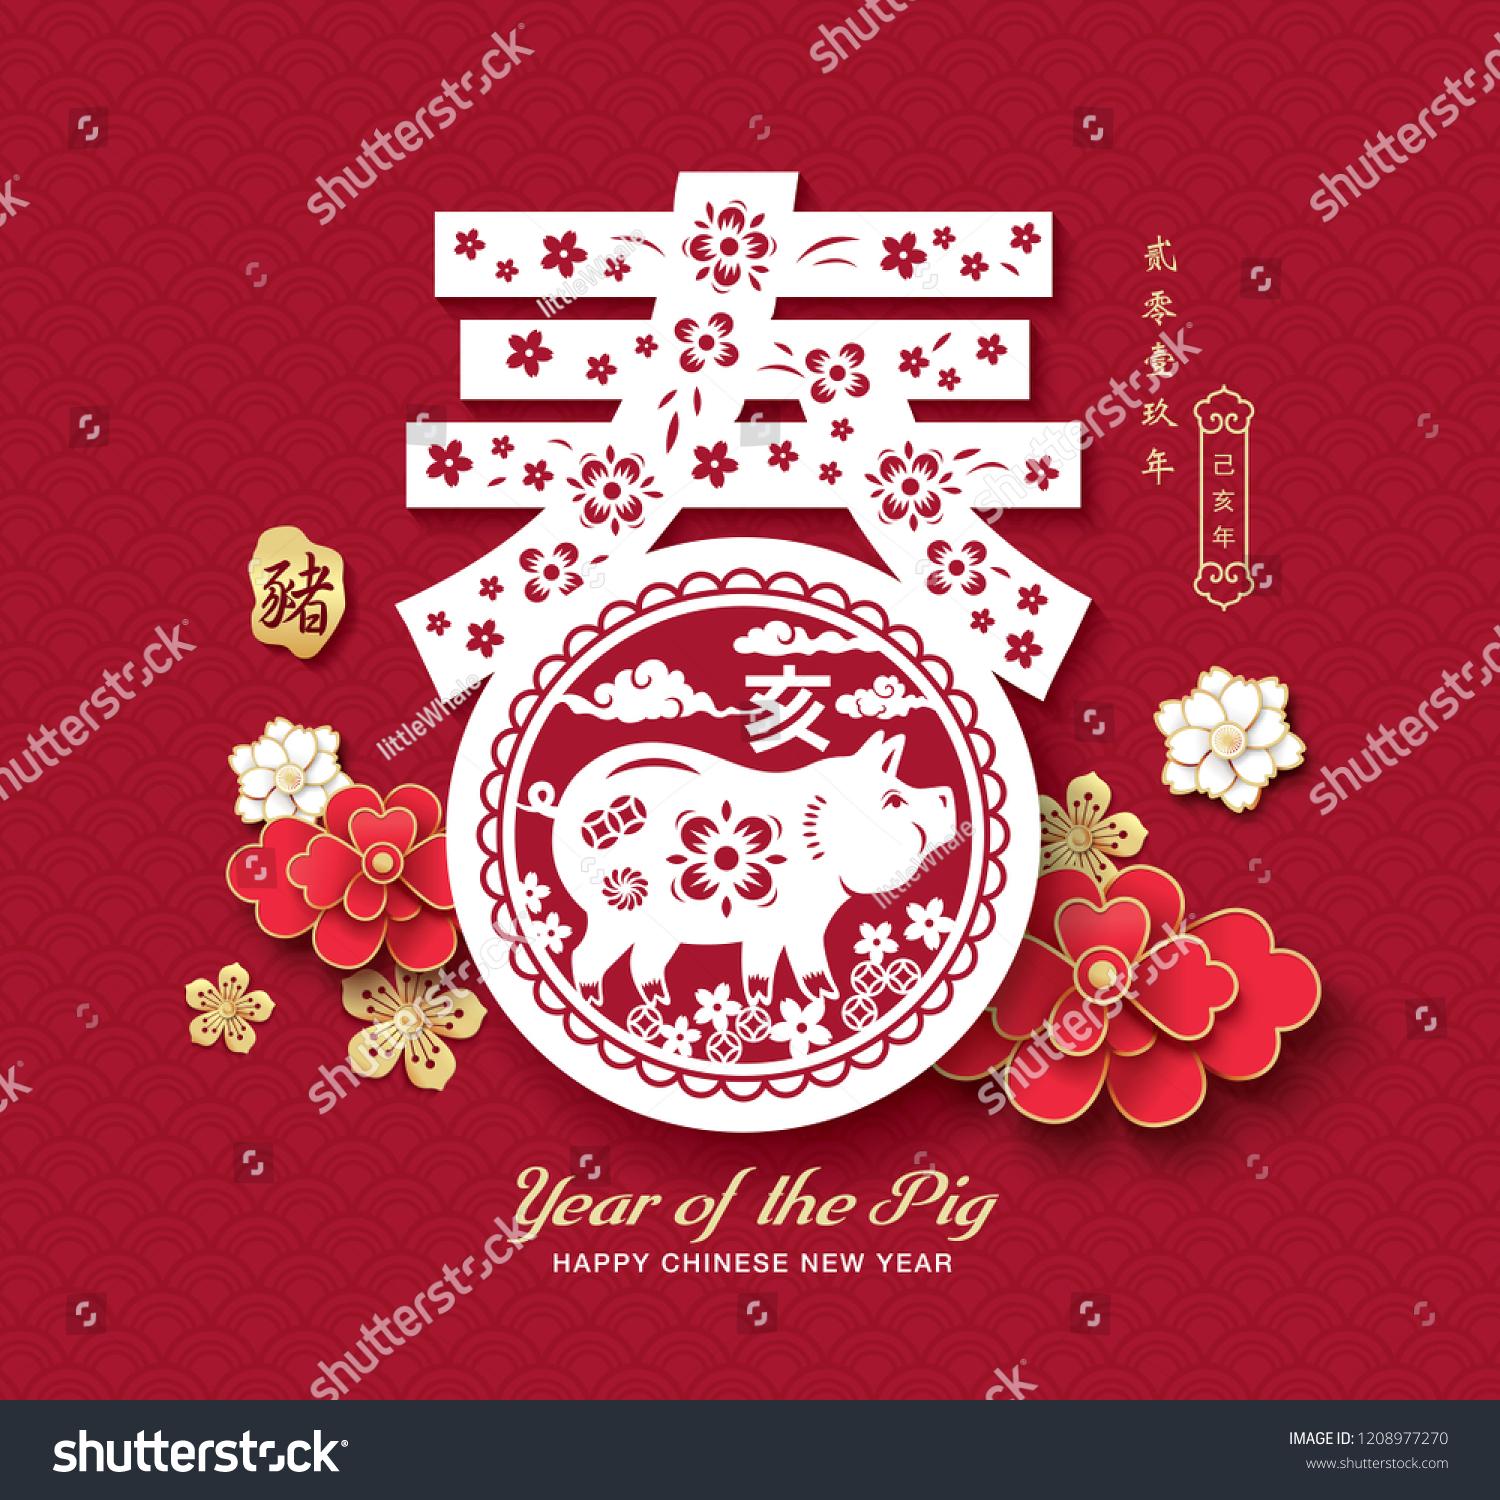 Chinese Dierenriem 2019 Chinese New Year 2019 Traditional Chinese Stockvector Rechtenvrij